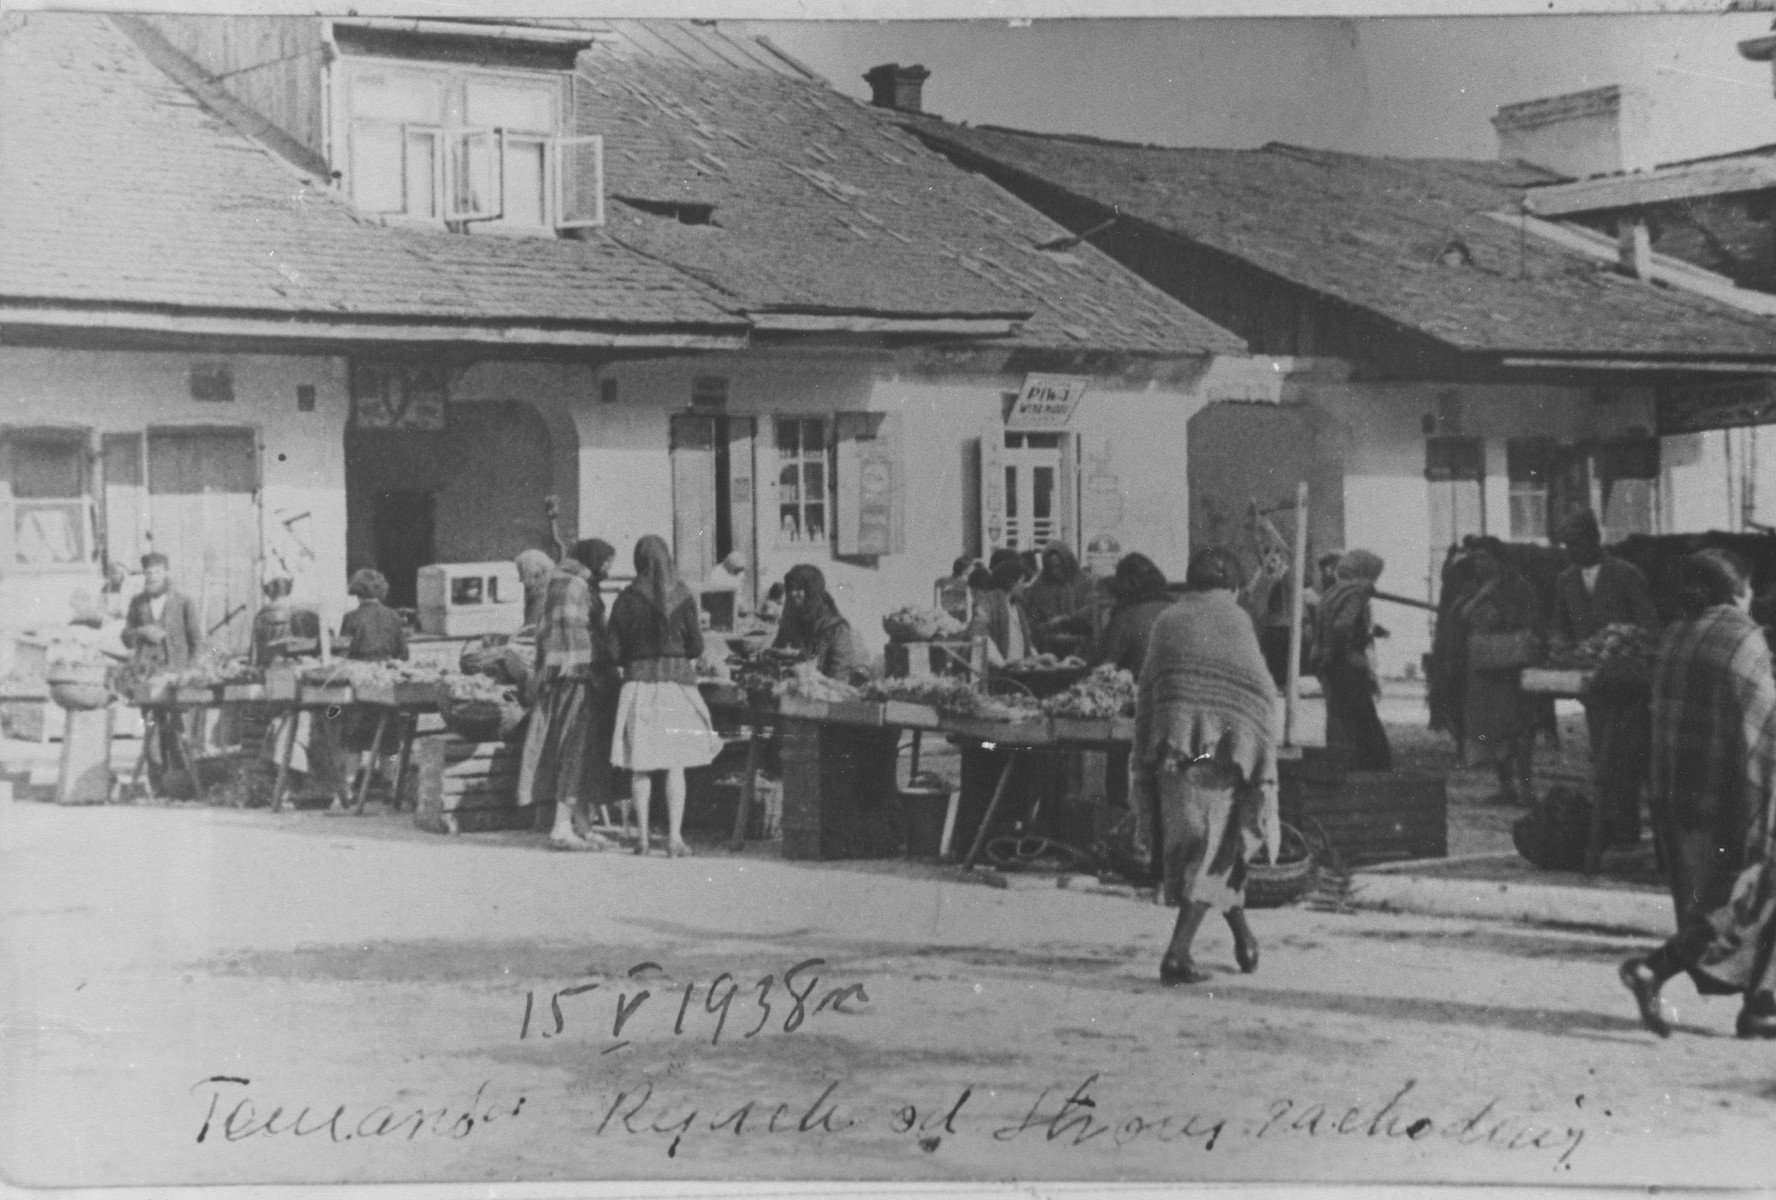 Local residents shop at the outdoor market in Tomaszow Lubelski.